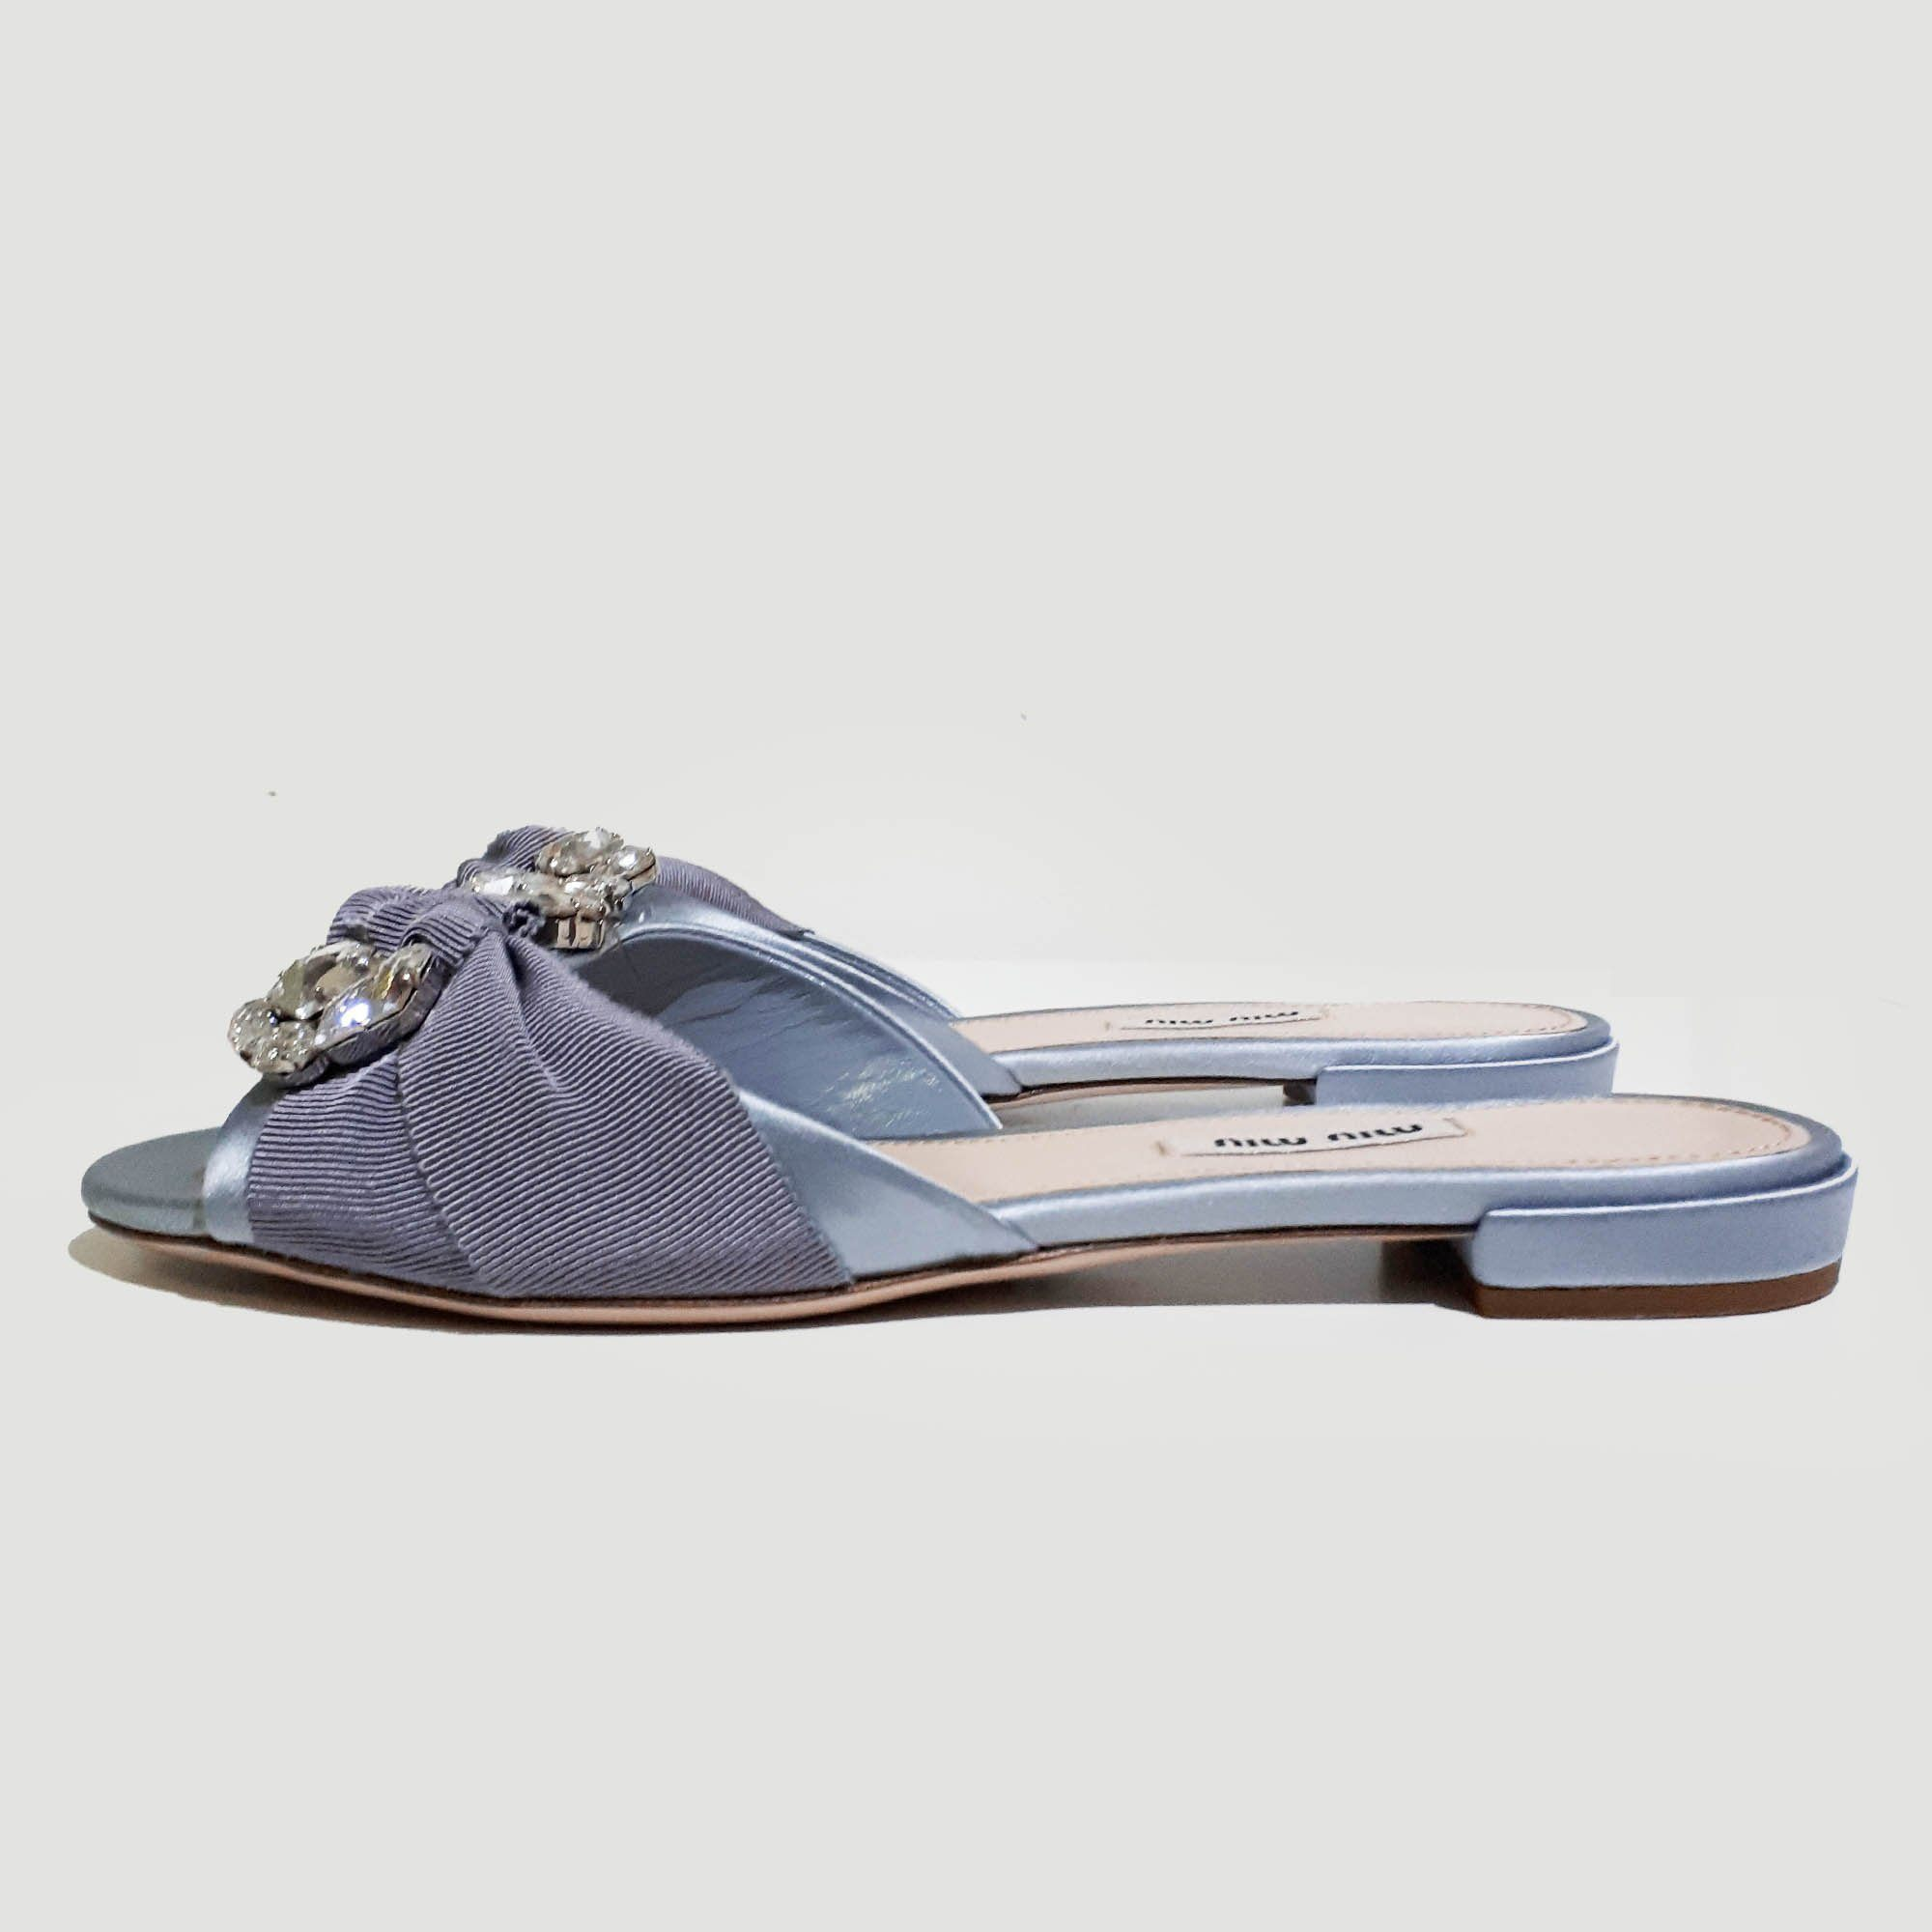 Miu Miu Light Blue Satin Crystal Embellished Slip-On Sandal